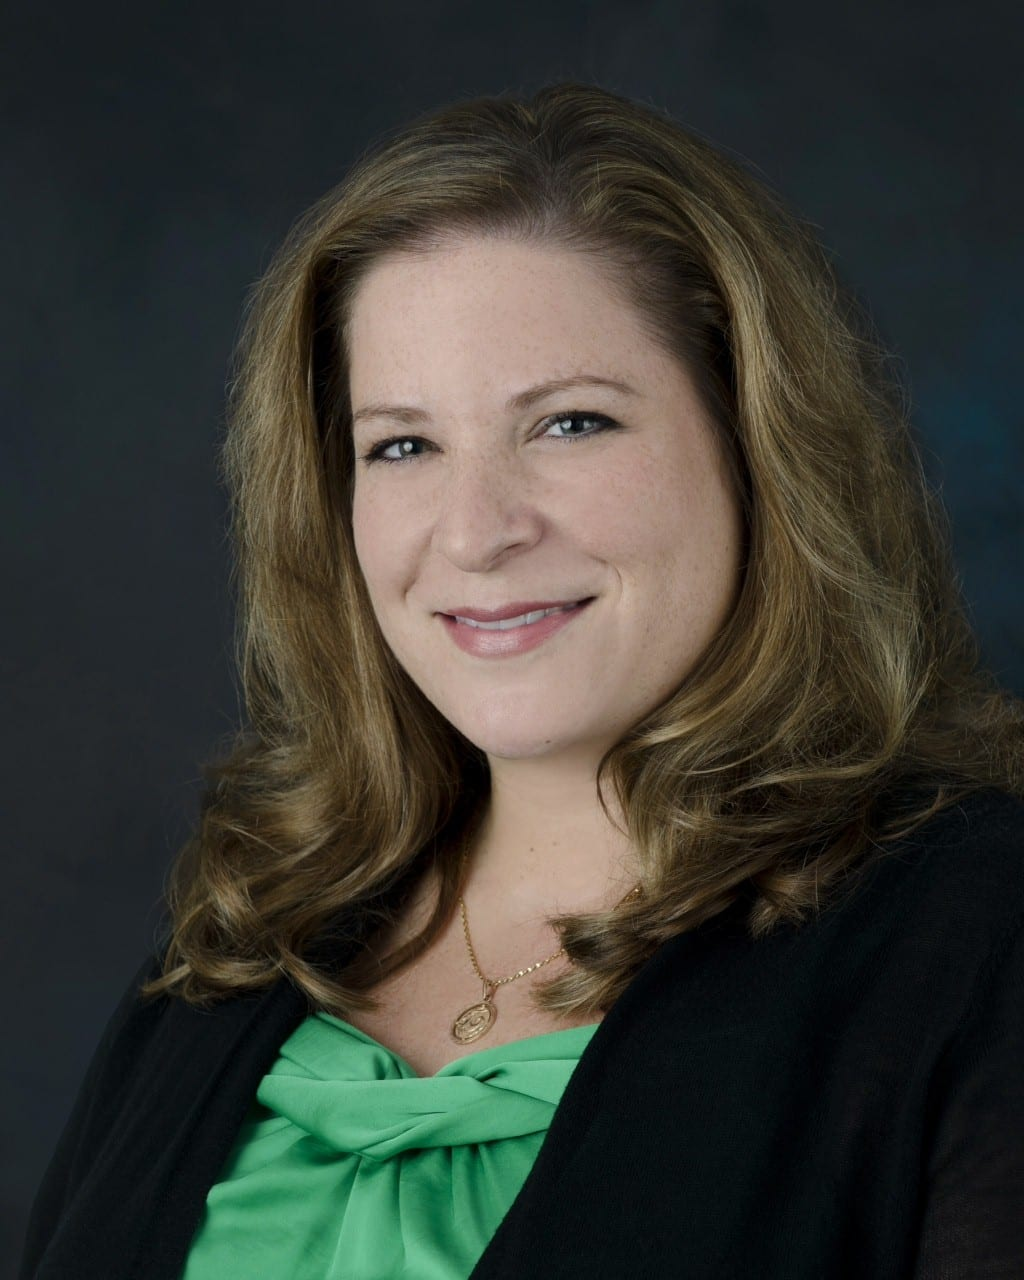 Client News: Decatur OB/GYN Practice Adds A Certified